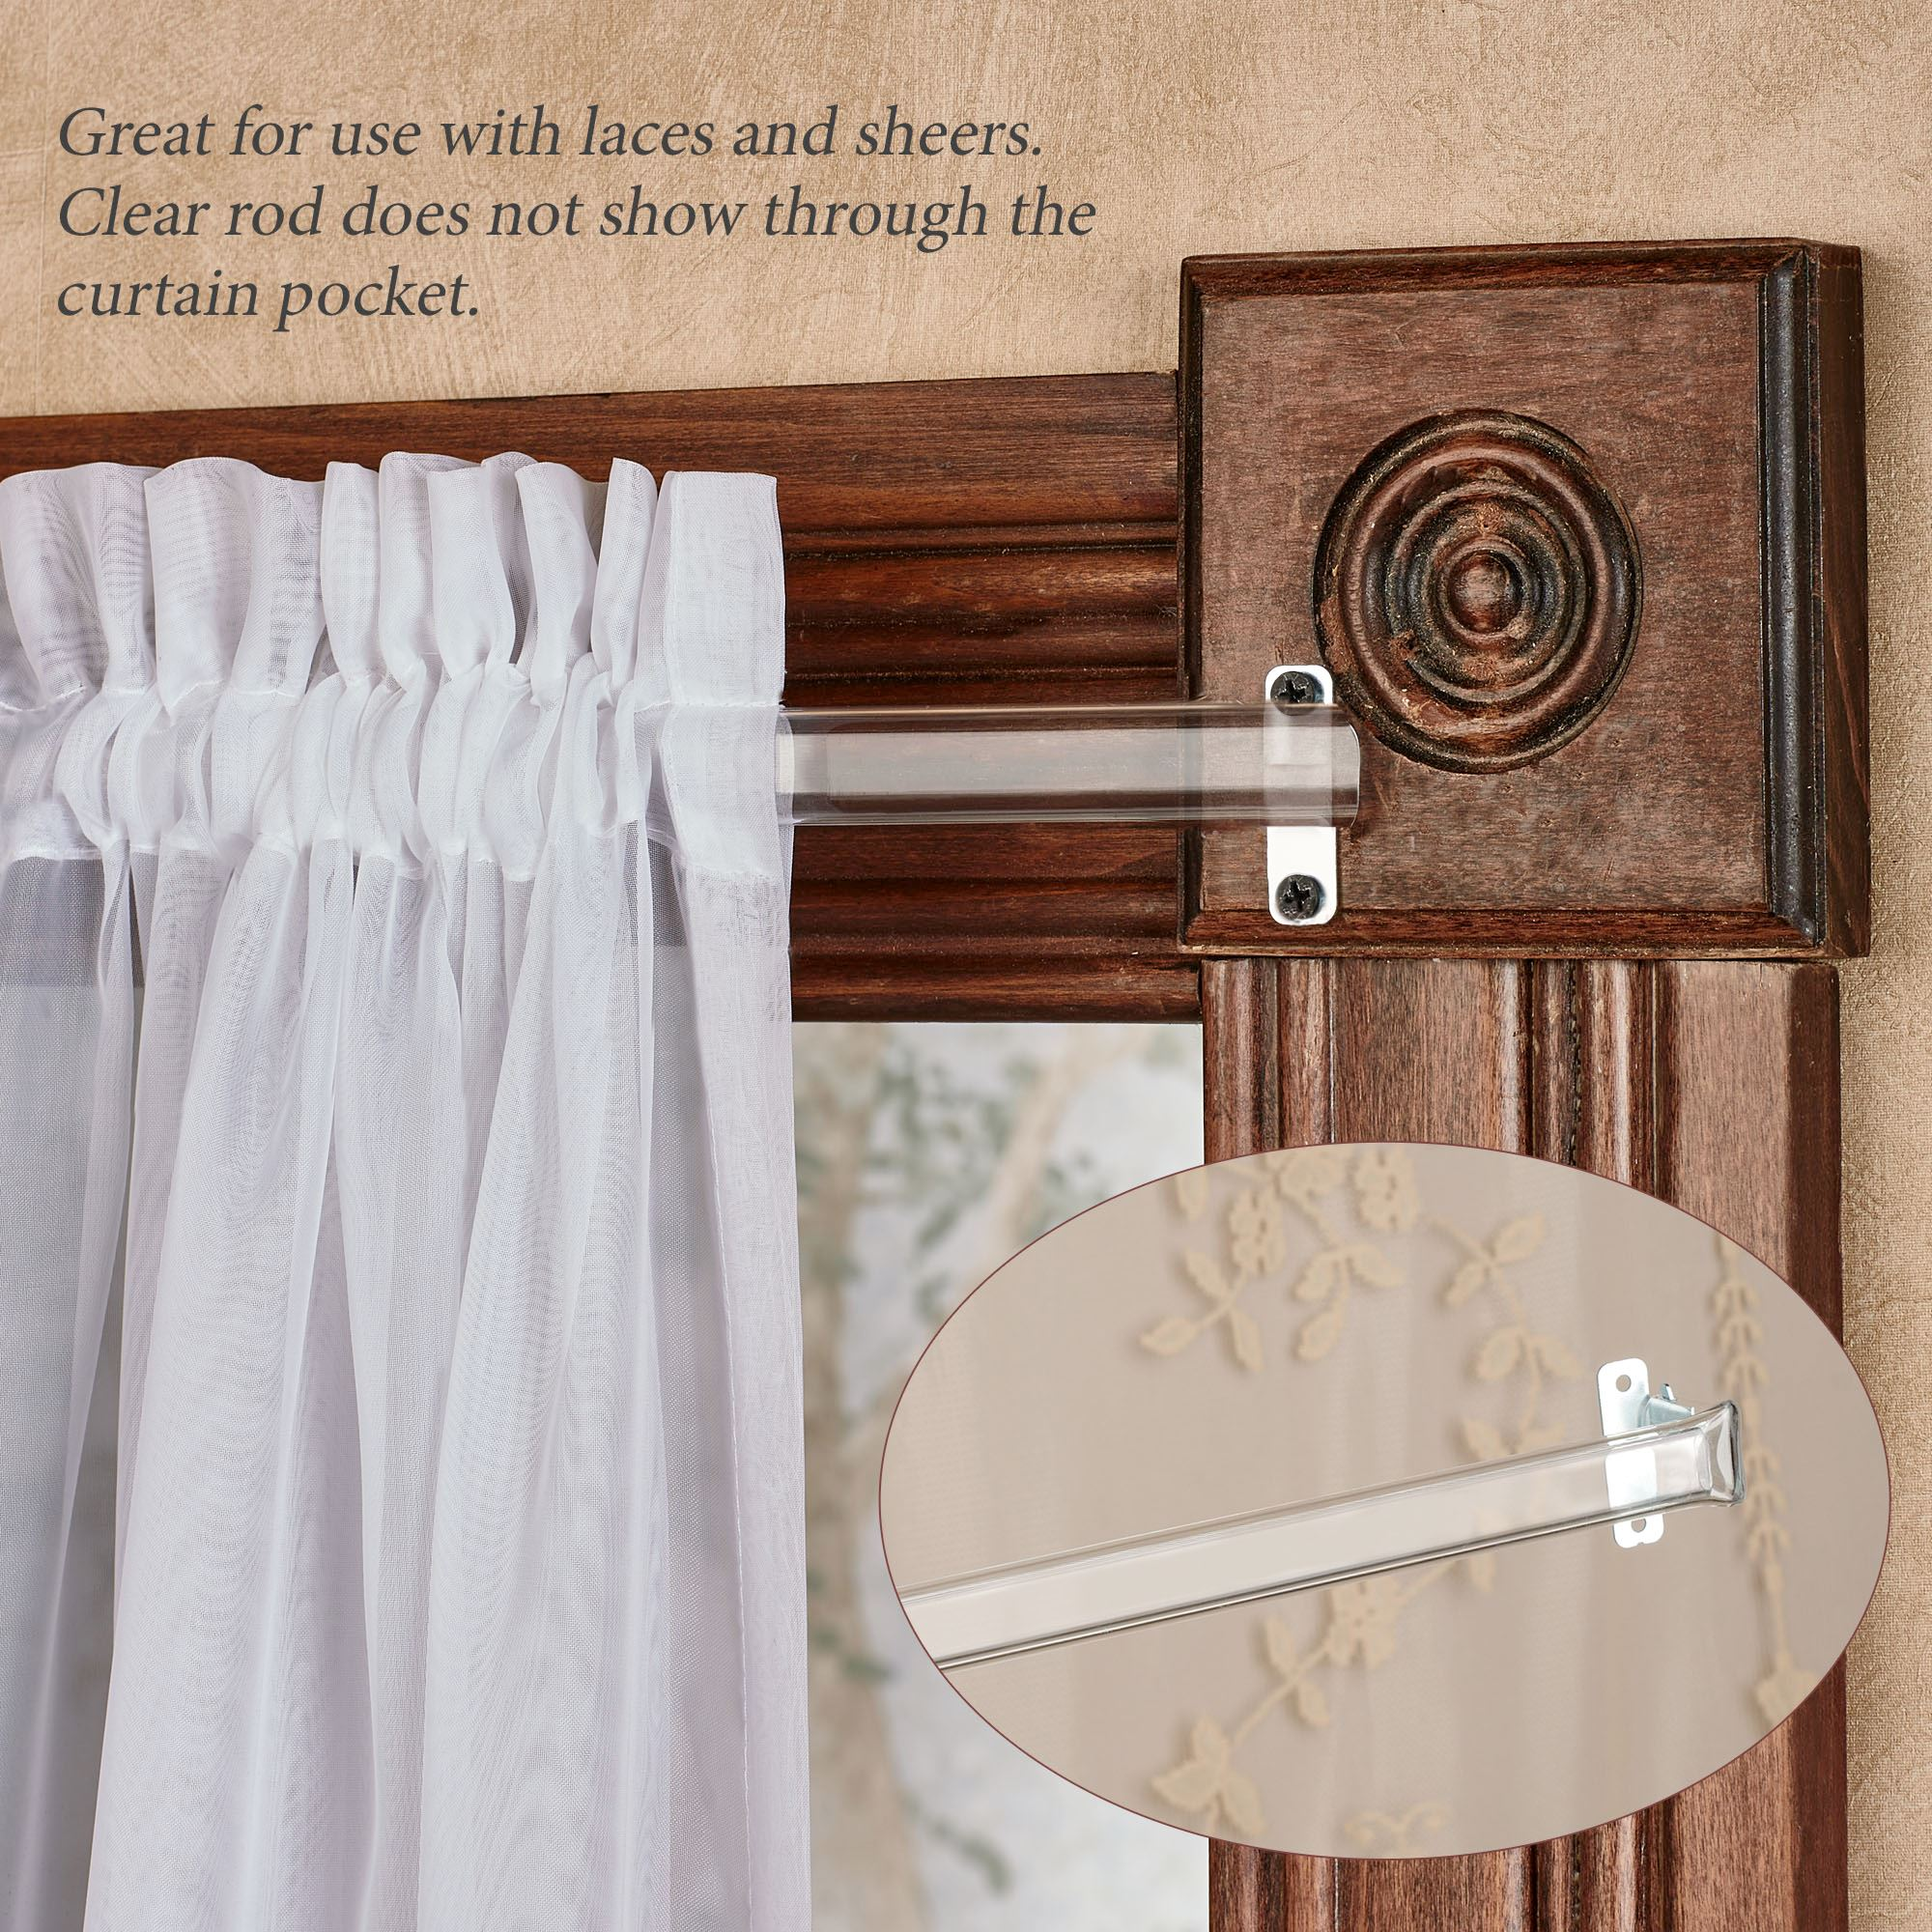 Clear Curtain Rod For Laces And Sheers 28 To 120